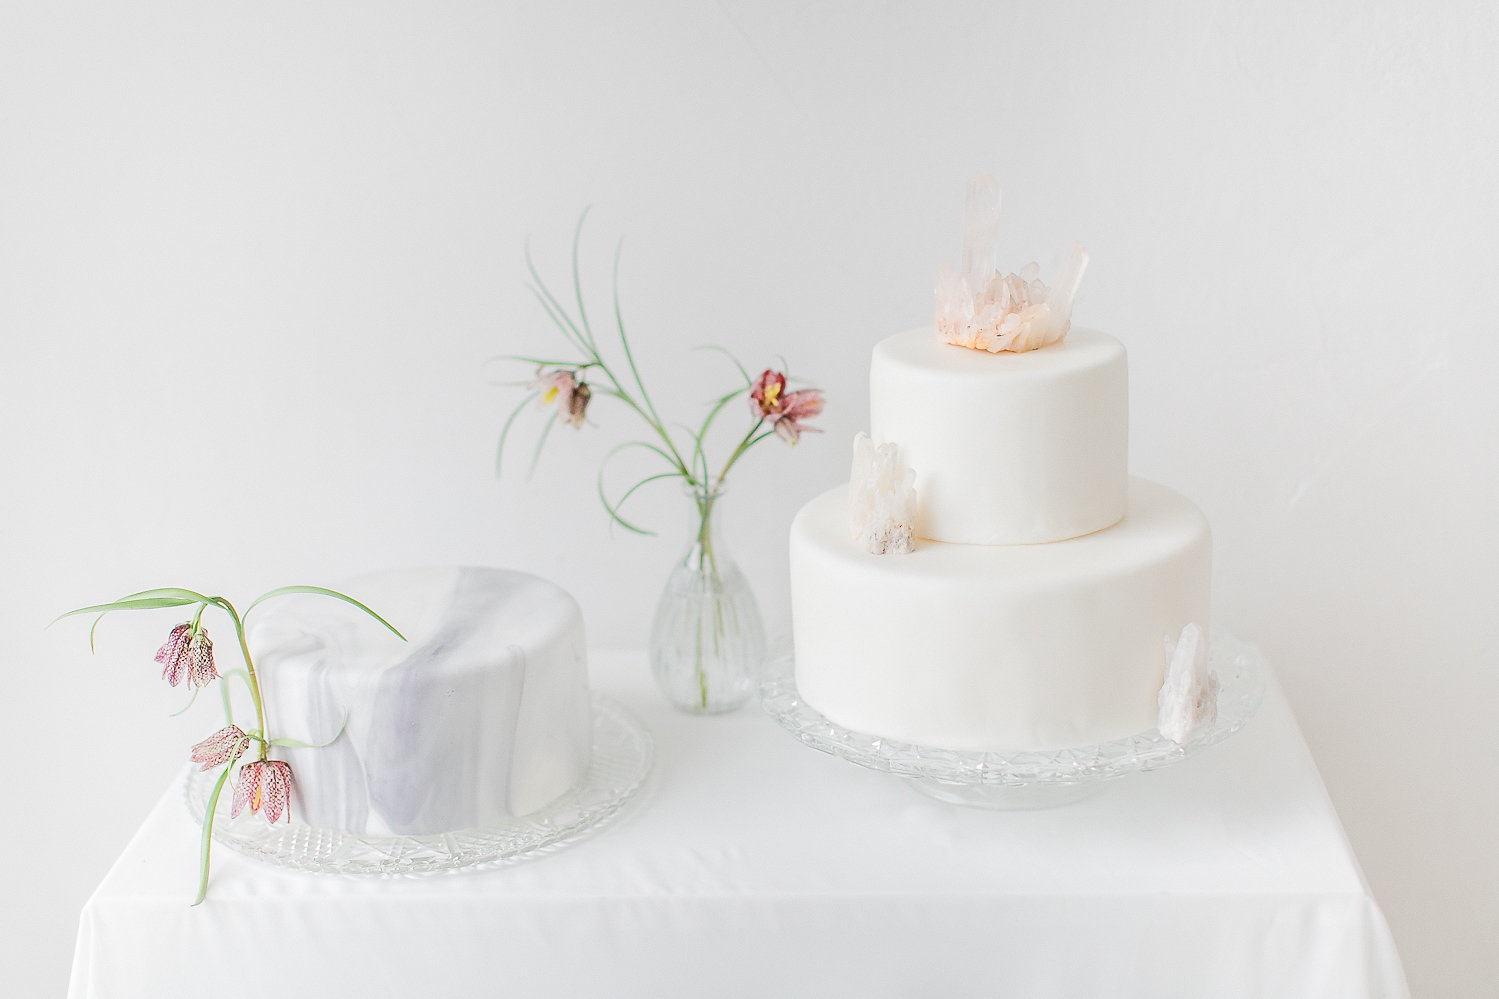 Fine Art Wedding Inspiration with Beautiful Crystals - BLOVED Blog